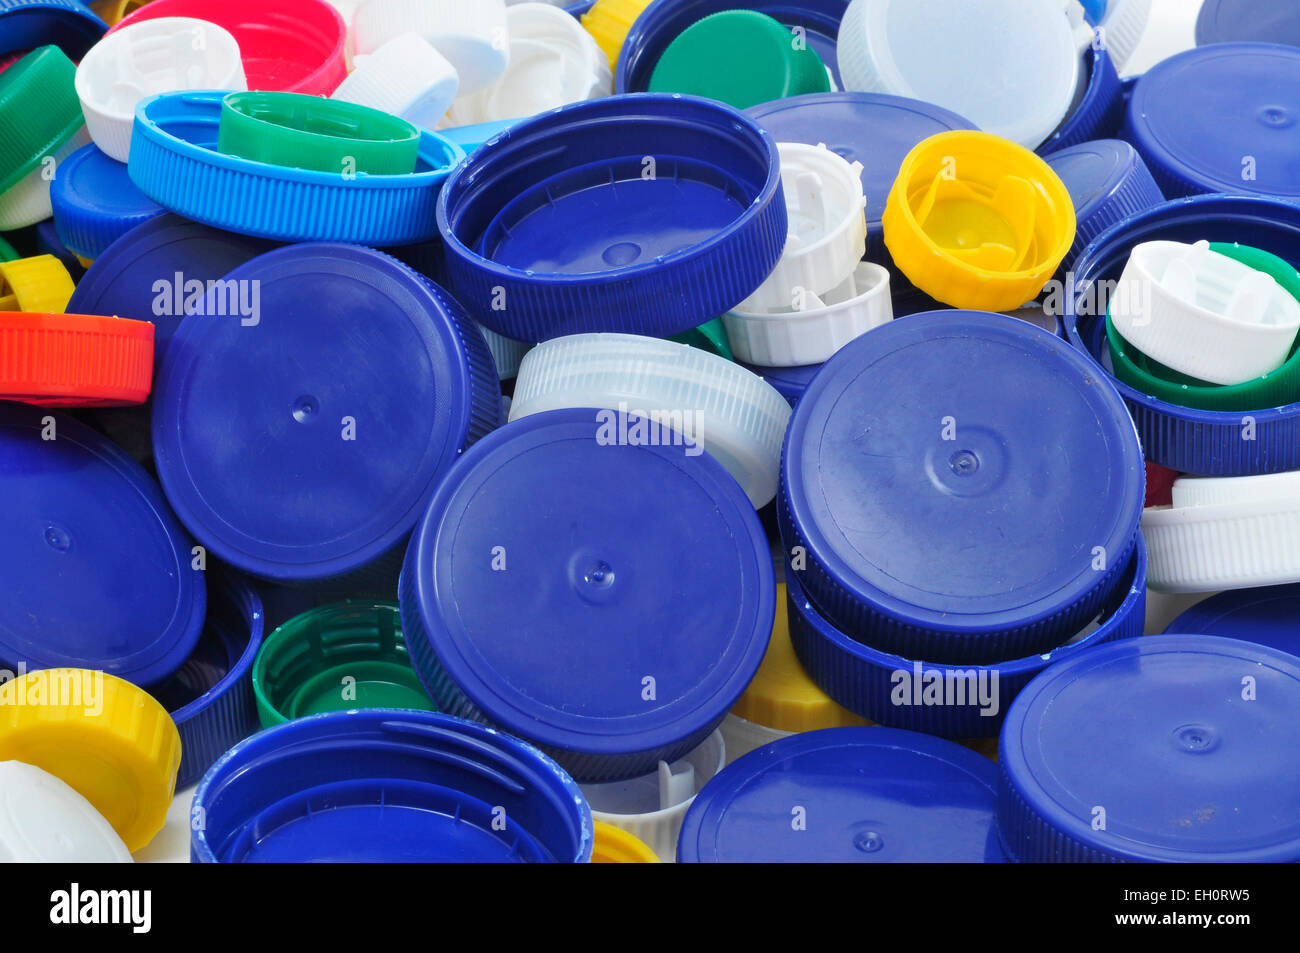 closeup of a pile of plastic screw caps of different colors and sizes - Stock Image